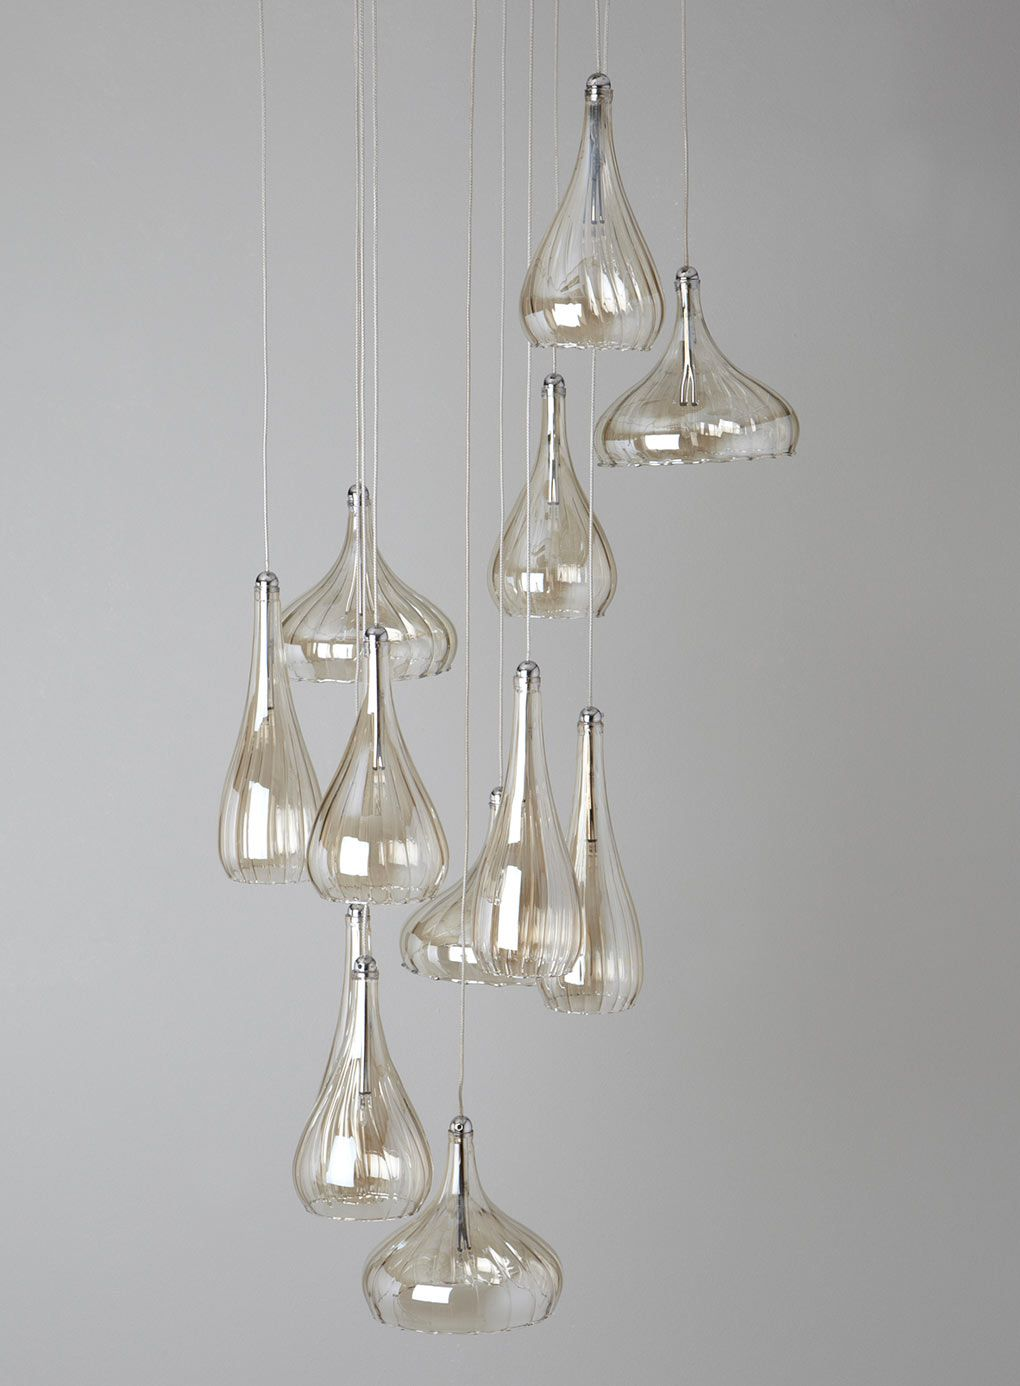 Carrara 12 Light Ceiling Pendant - clusters - ceiling lights - Home & Lighting - BHS Grayscale ...